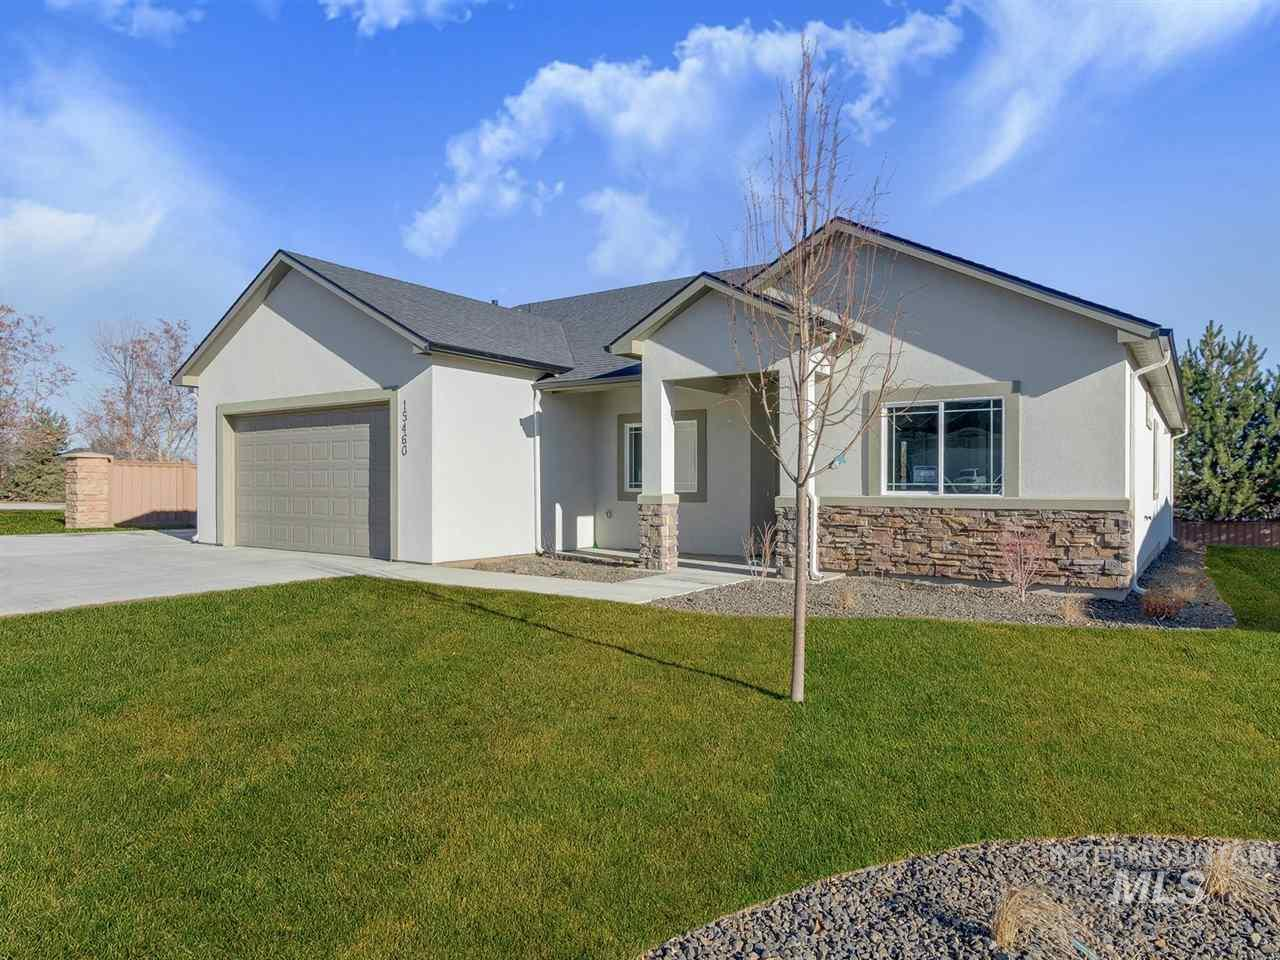 Photo for 13906 Oakford St., Caldwell, ID 83607 (MLS # 98780839)